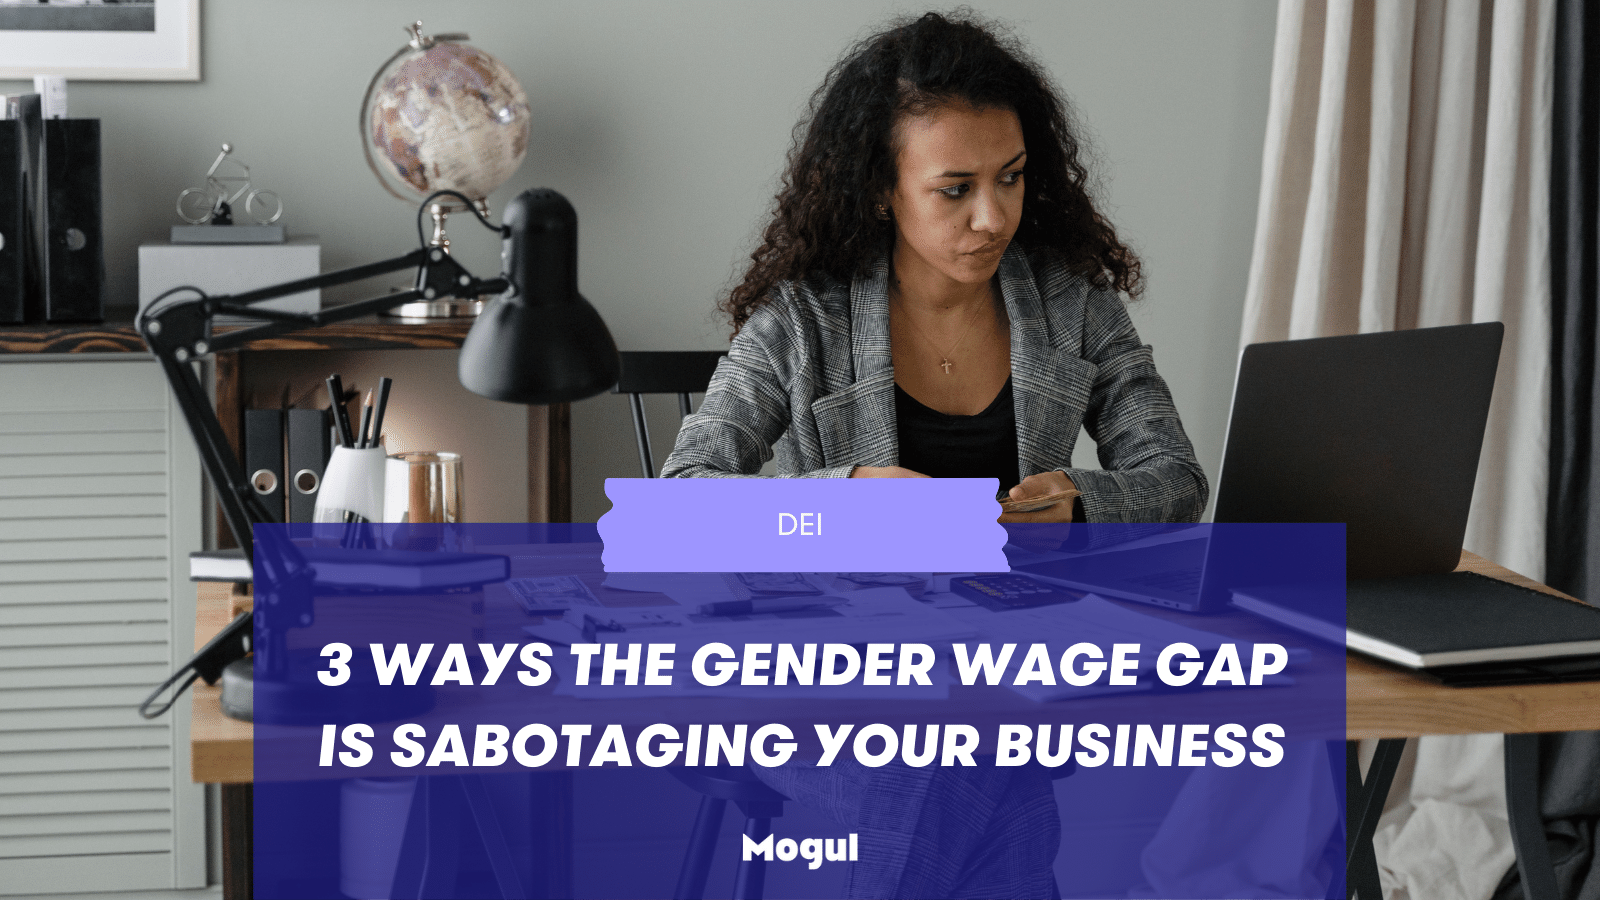 3 ways the gender wage gap is sabotaging your business